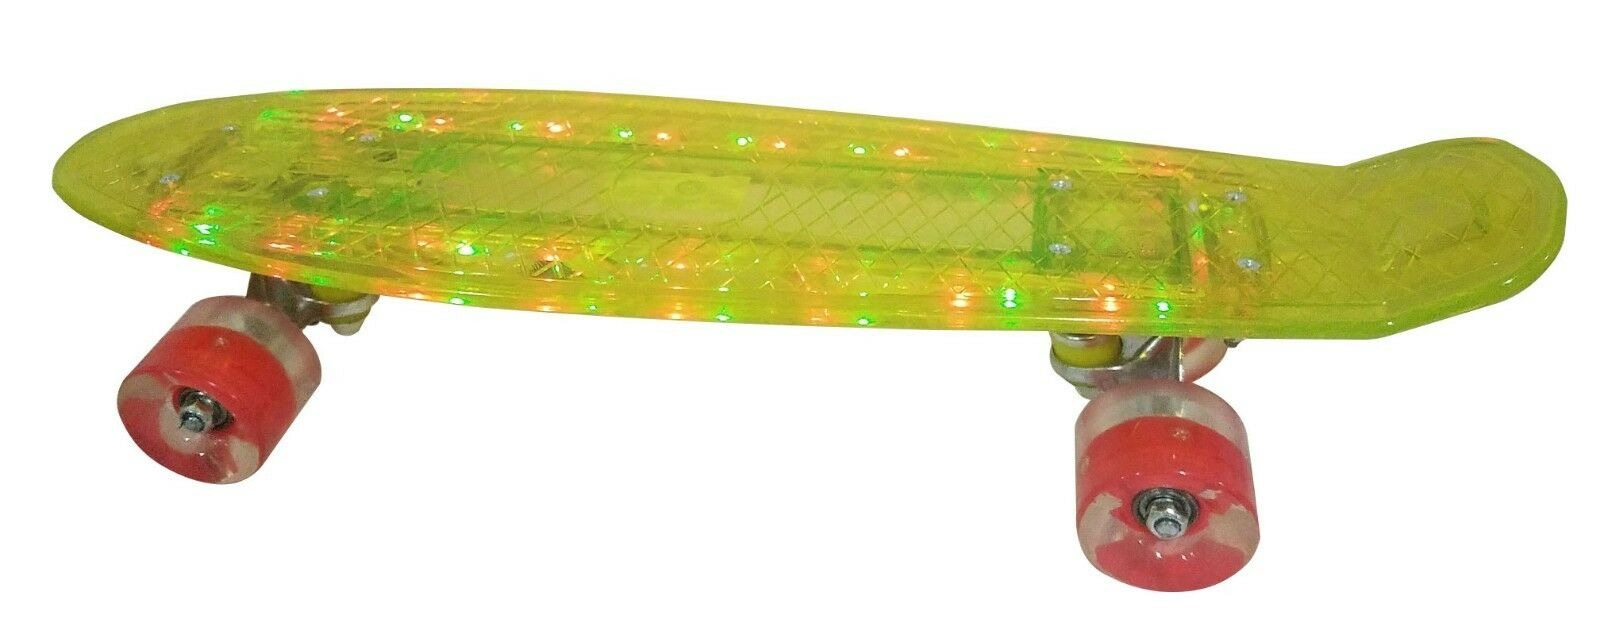 LED 22  S board with 4 Different Light Modes  and Light Up Wheels - Yellow  2018 latest